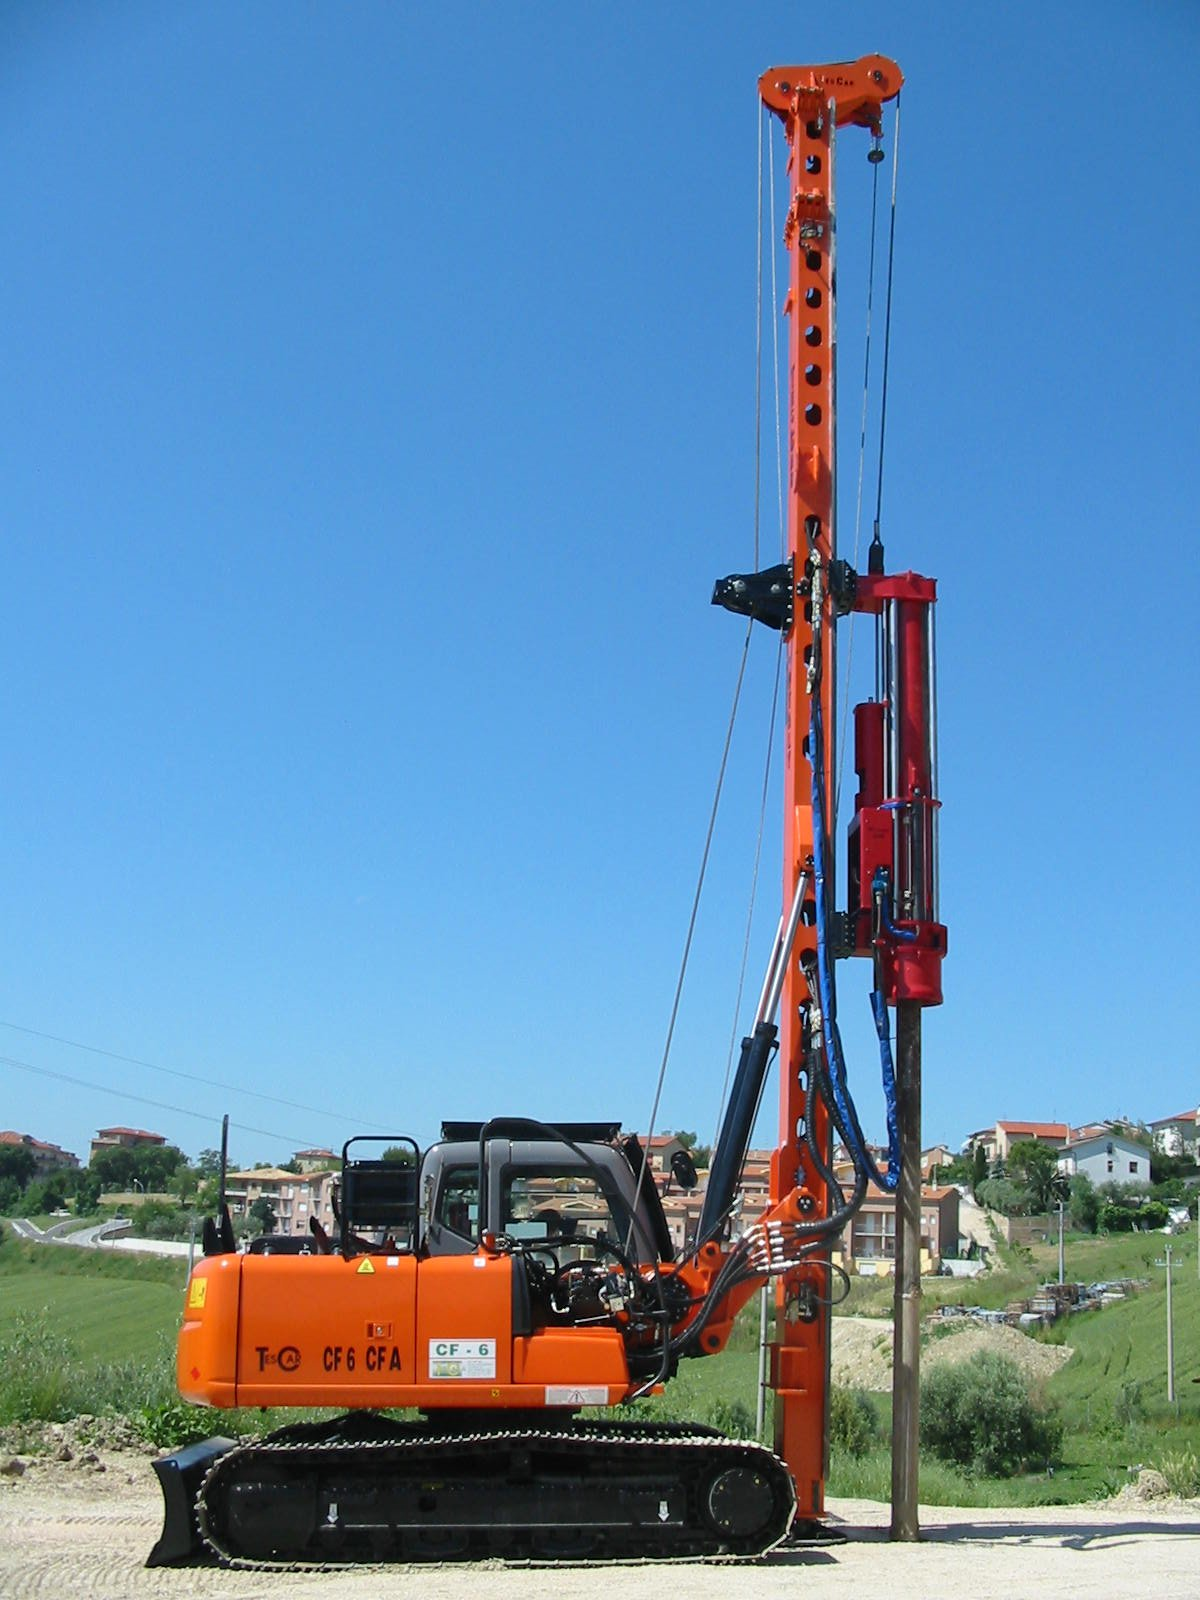 Tesca Cf6 Impact Hydraulic Hammer - Buy Piling Rig Product on Alibaba com